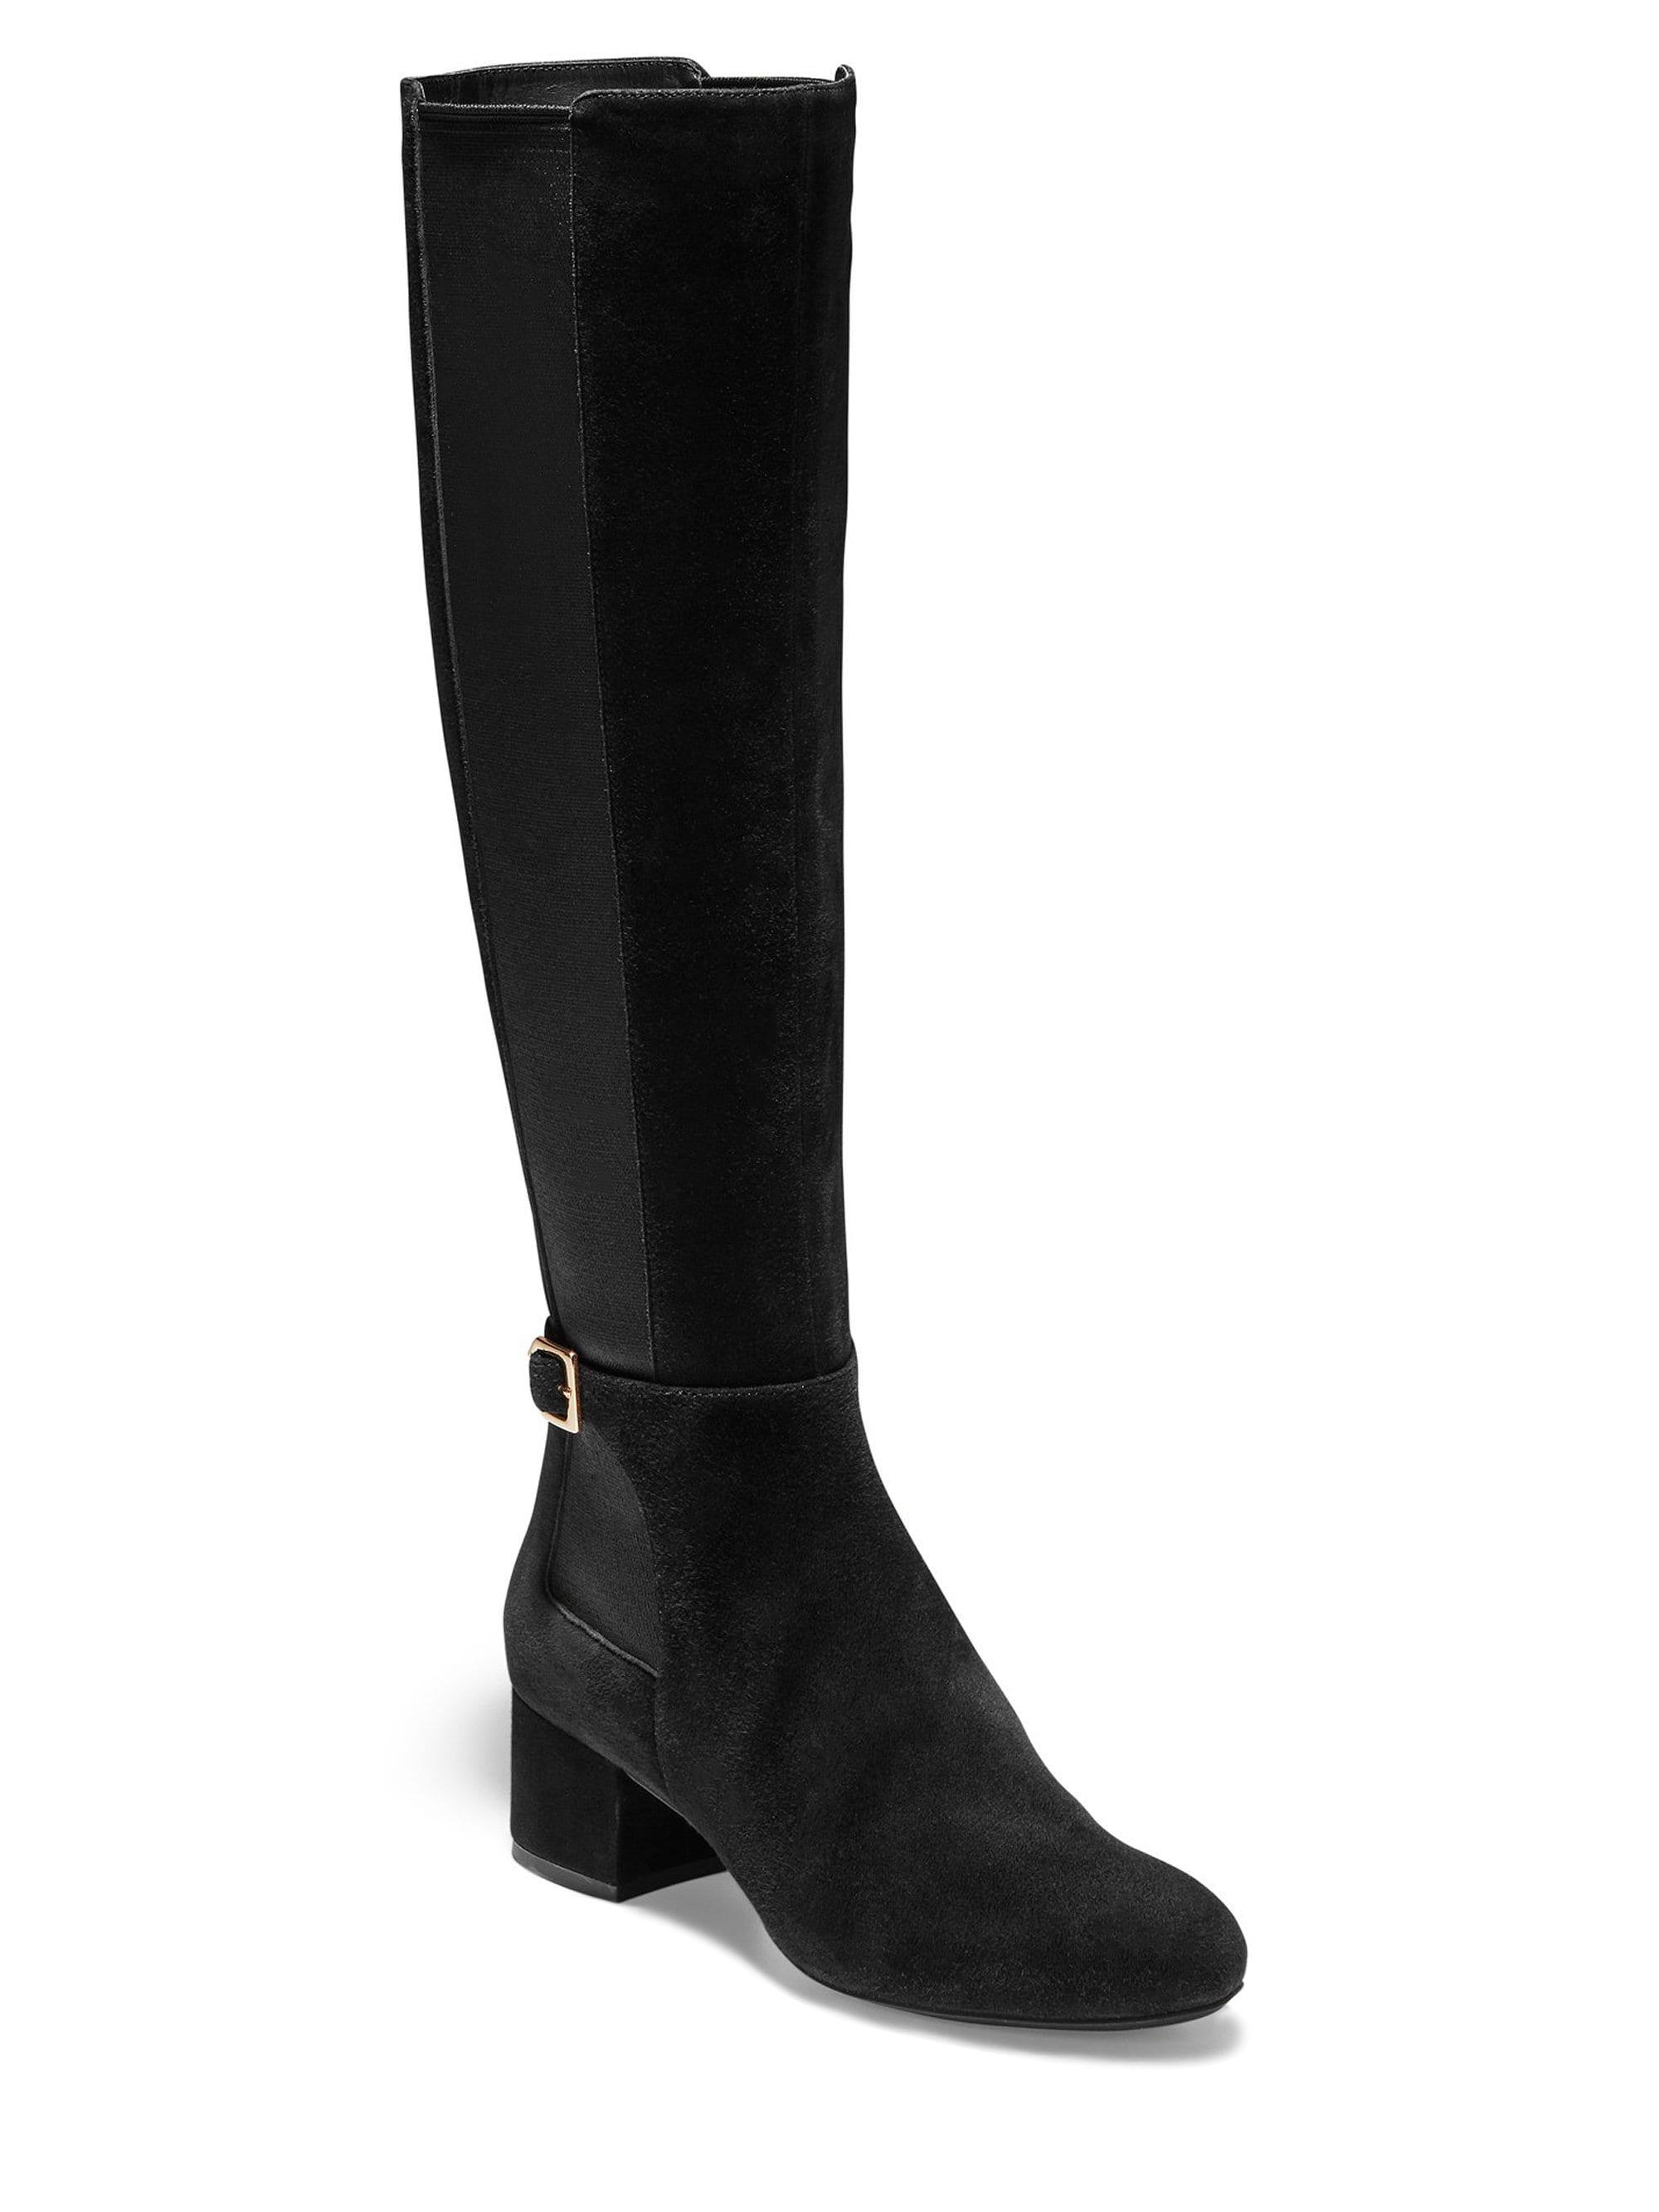 4f083463dc3 Cole Haan Avani Stretch Boots in Black - Lyst